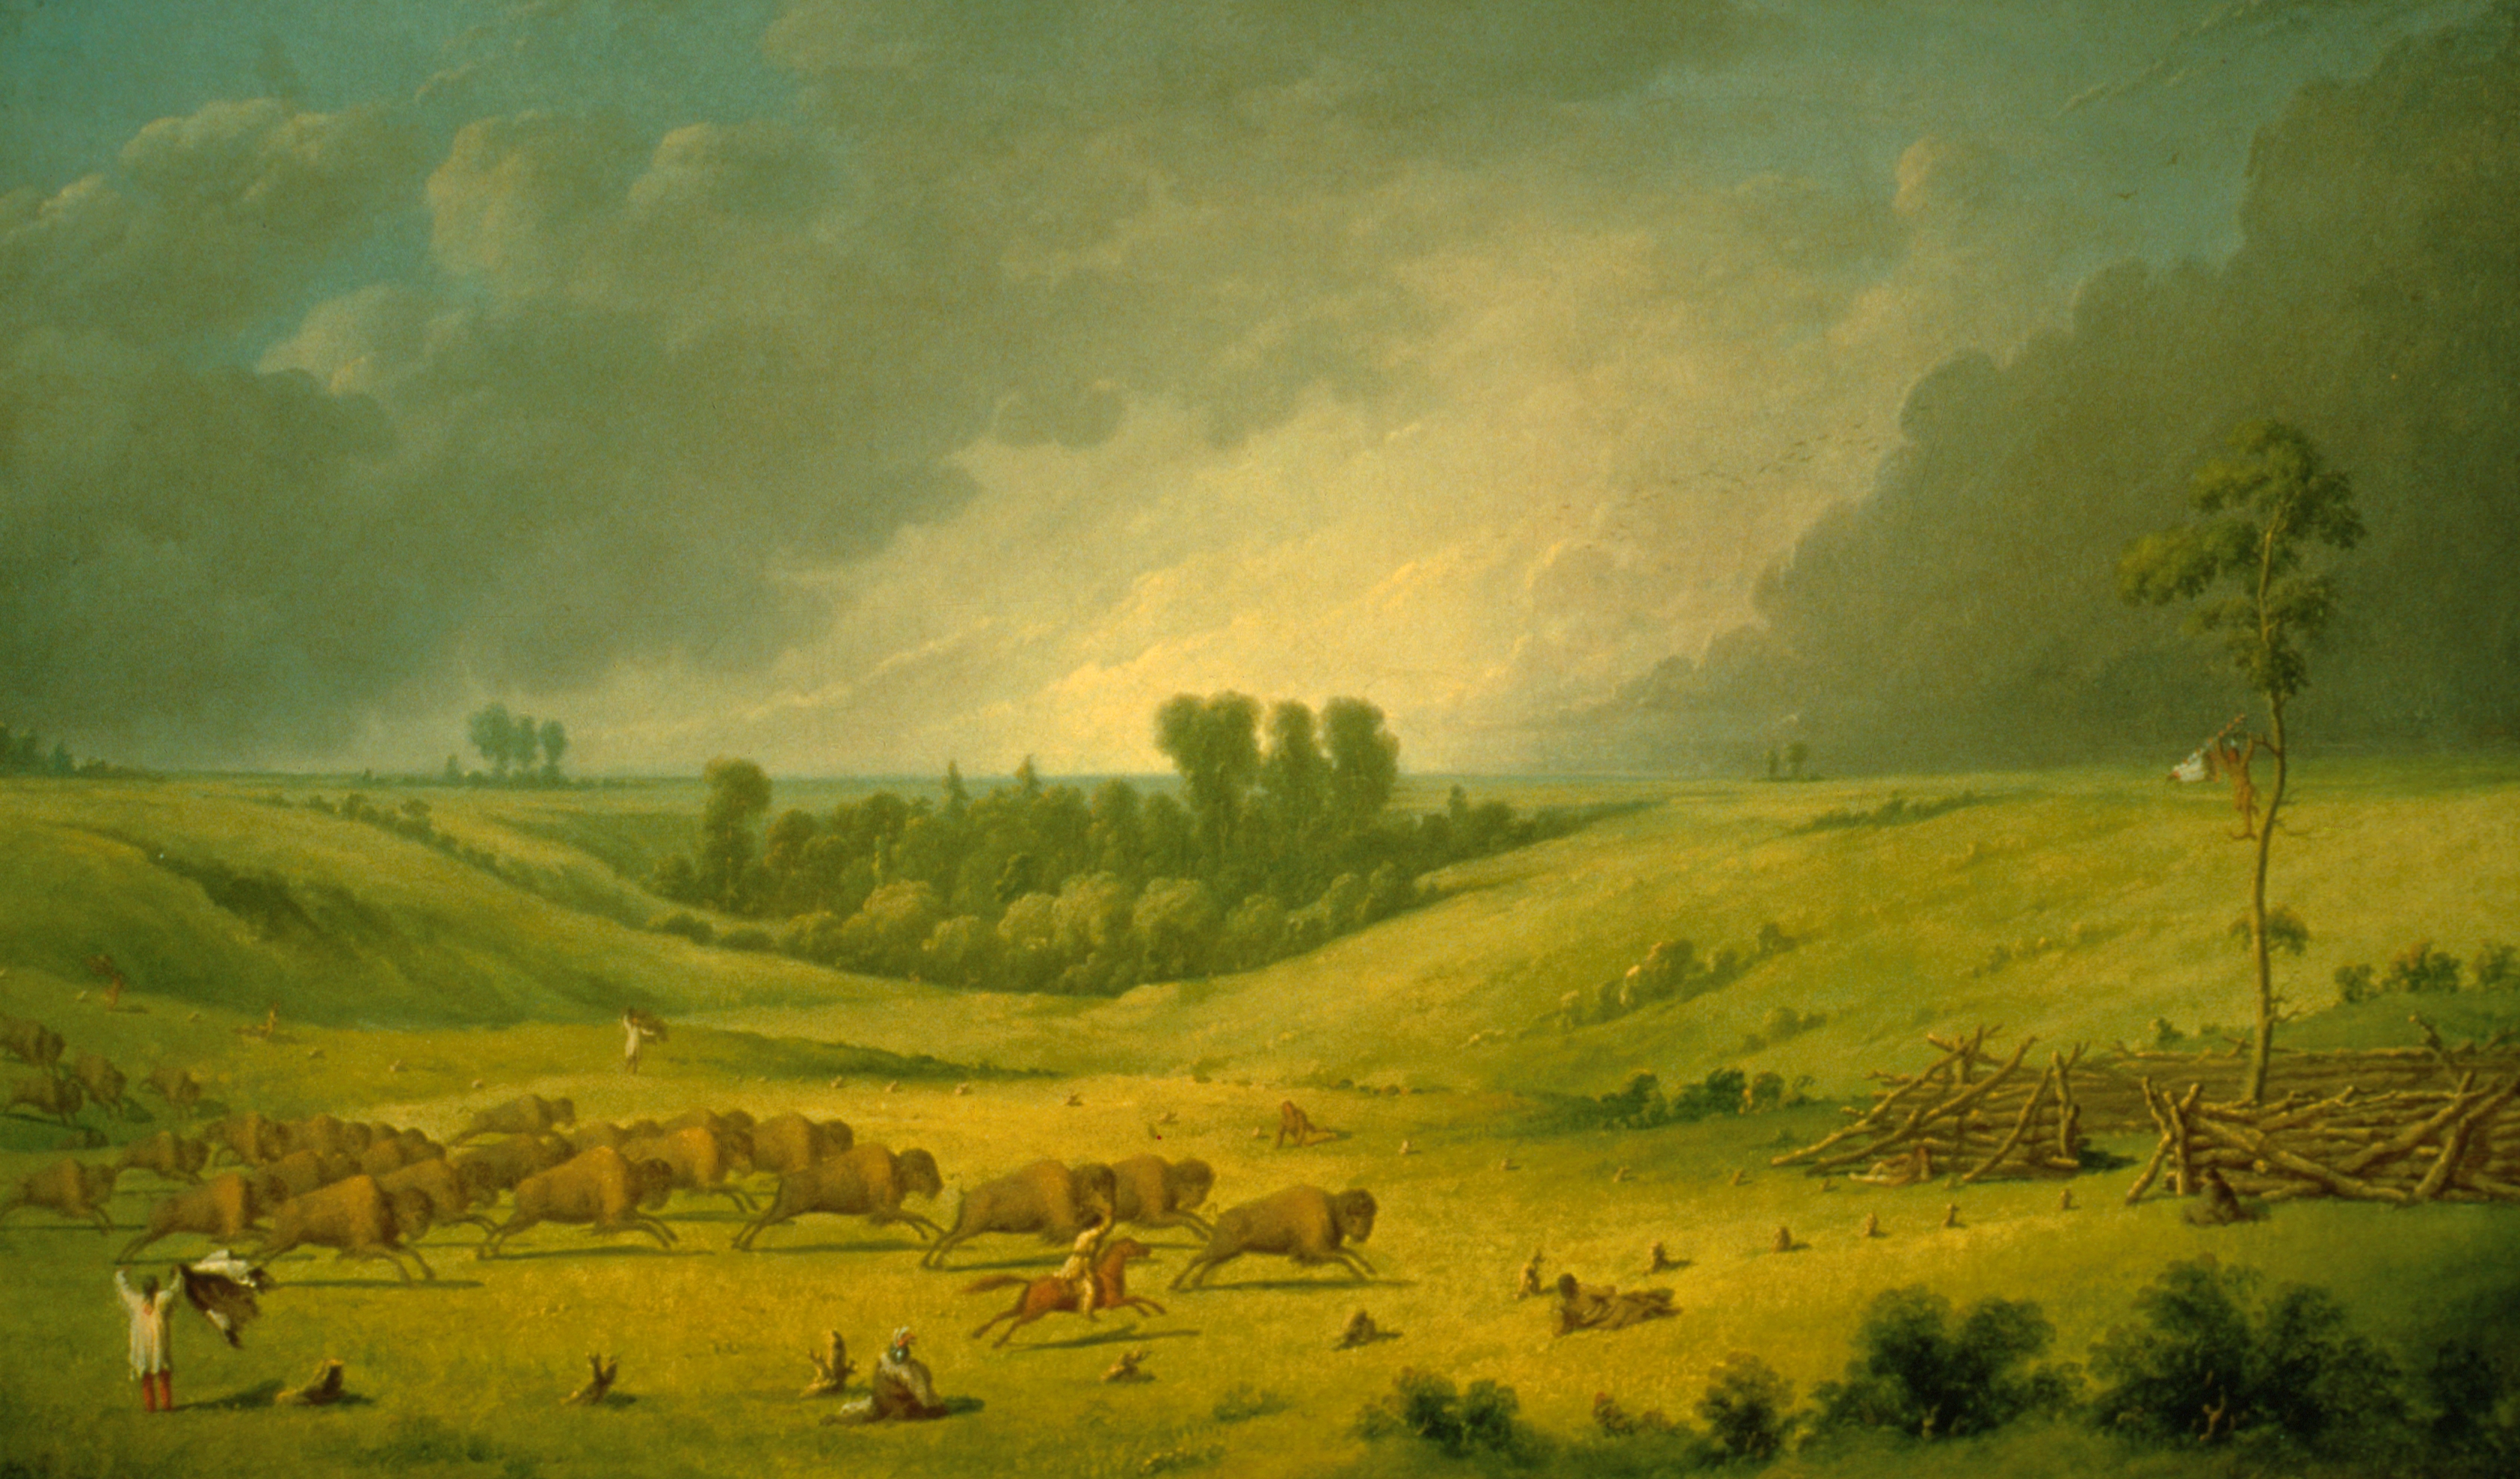 """A Buffalo Pound"" by Paul Kane, oil on canvas, 1849–1852.  912.1.33, Gift of Sir Edmund Osler"